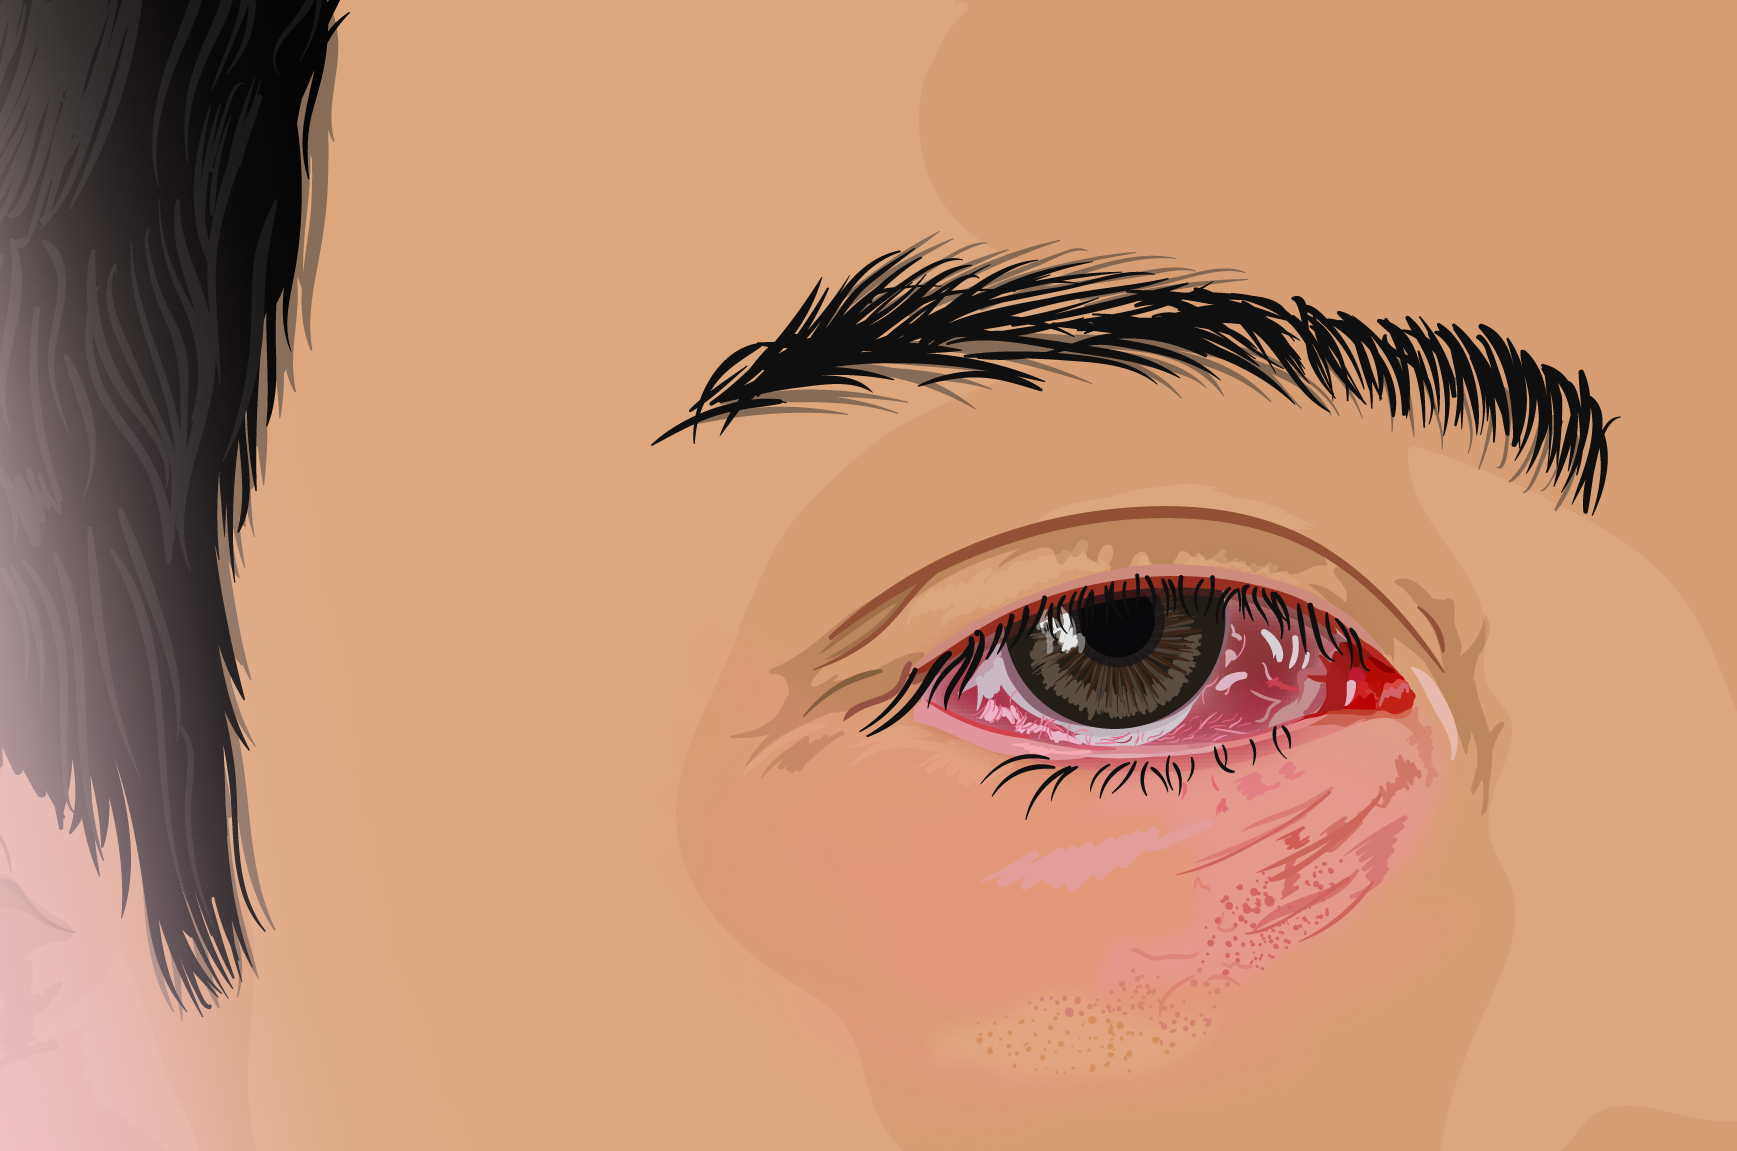 Blood in Eye After Sudden Bad Headache: Should You Worry?